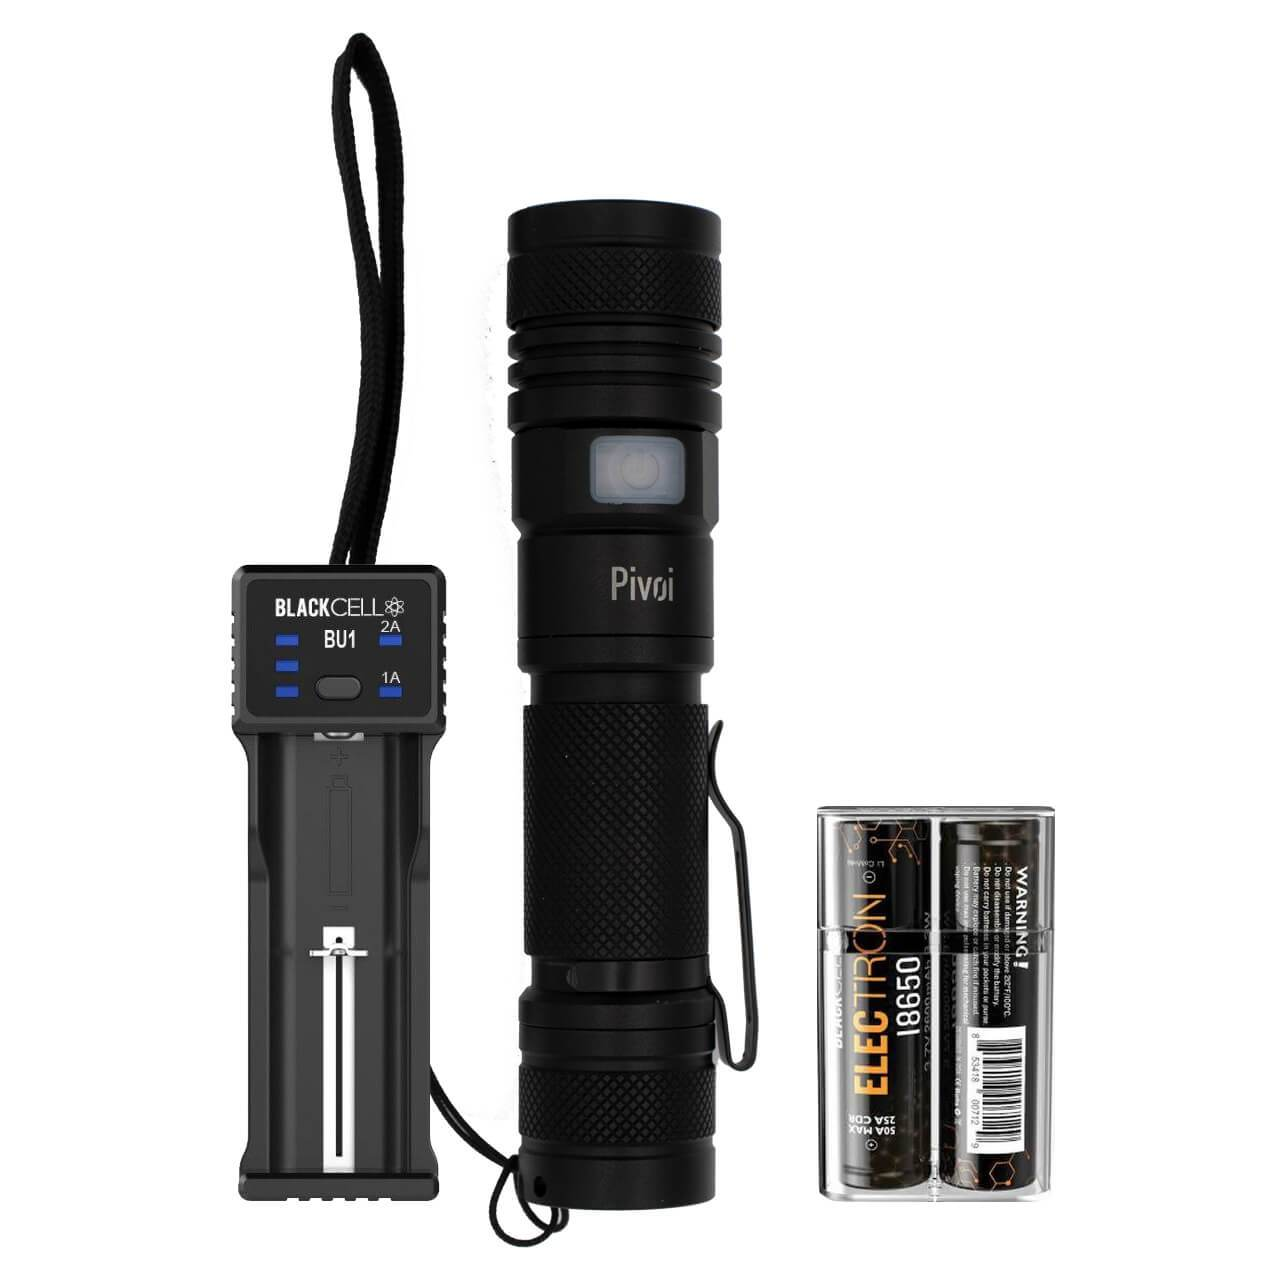 10W LED Flashlight with Blackcell BU1 Charger and 2 x 18650 Battery